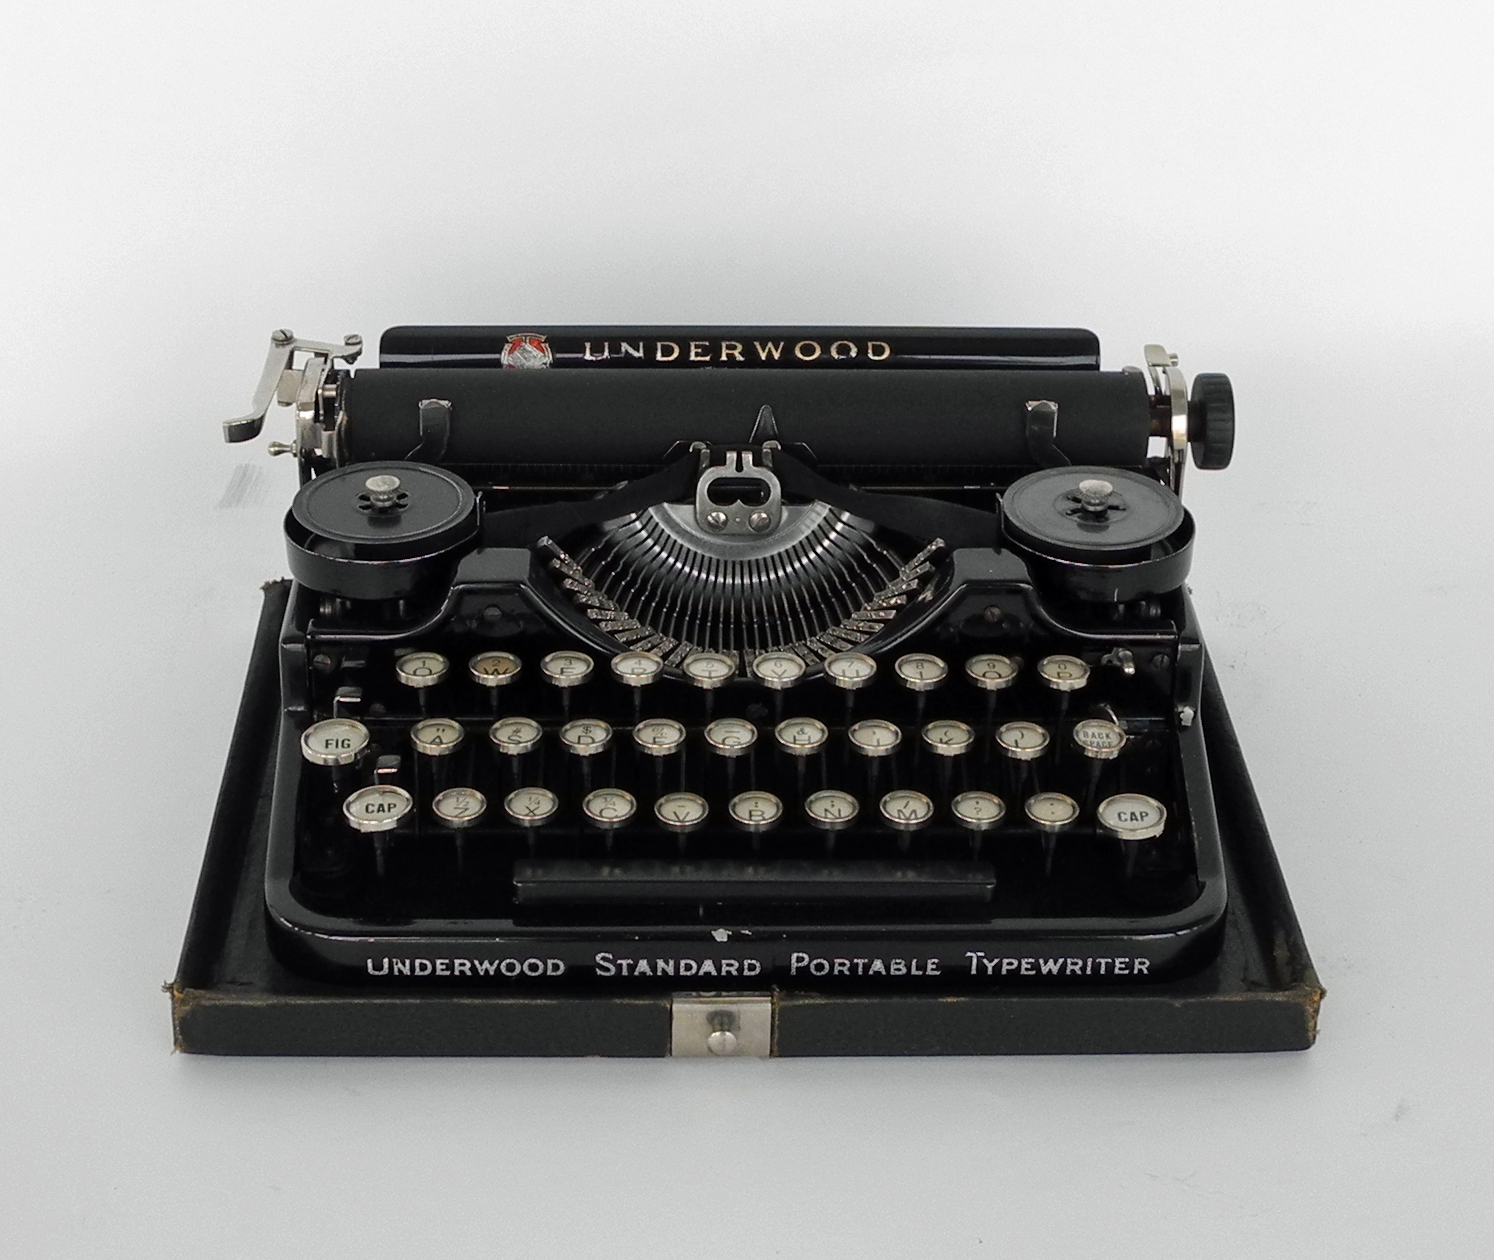 Underwood Standard Portable (Heinz Nixdorf MuseumsForum CC BY-NC-SA)